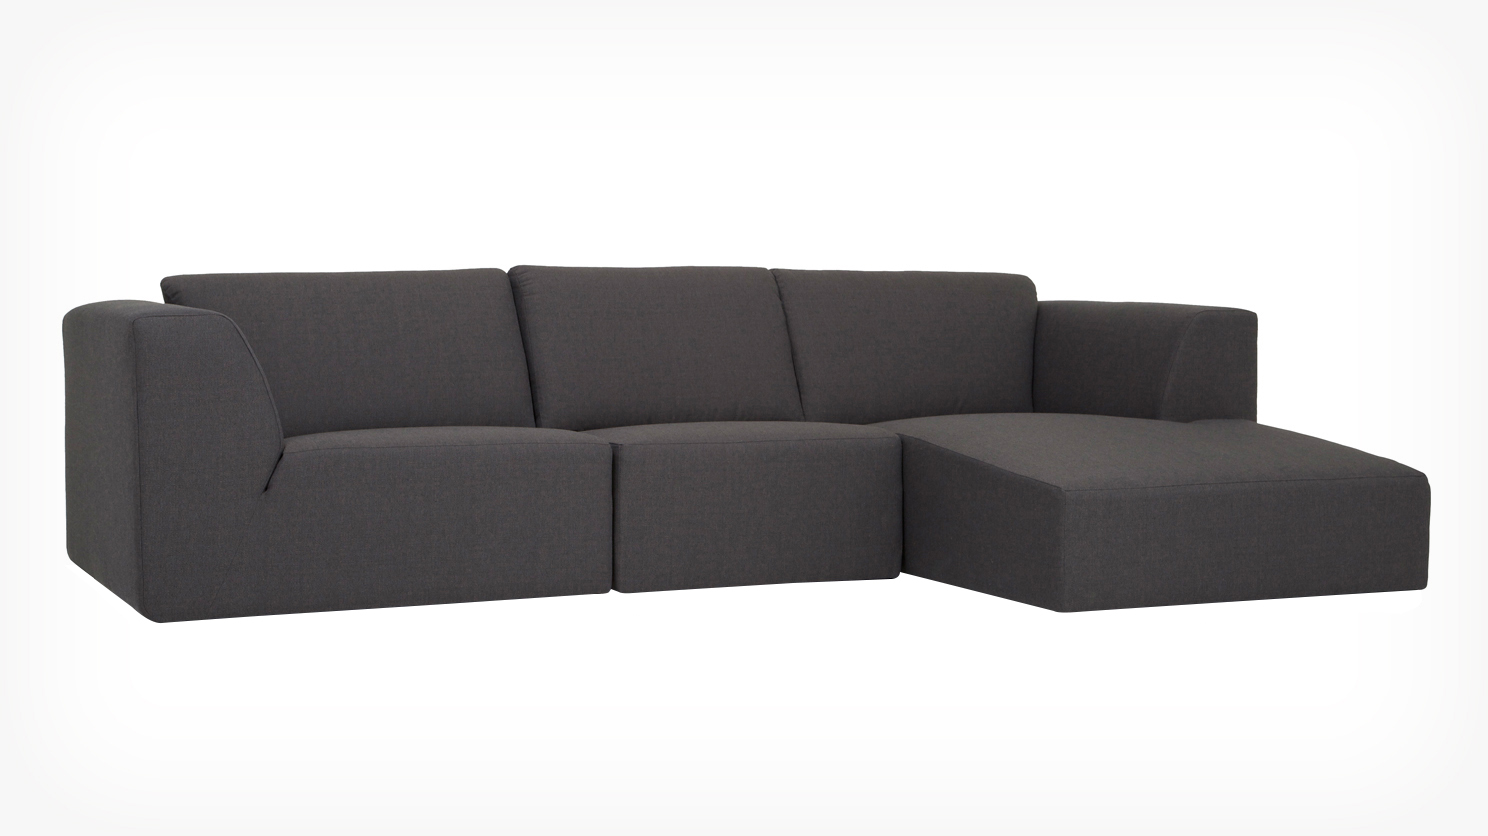 Eq3 Morton Modular 3 Piece Sectional Grid Furnishings